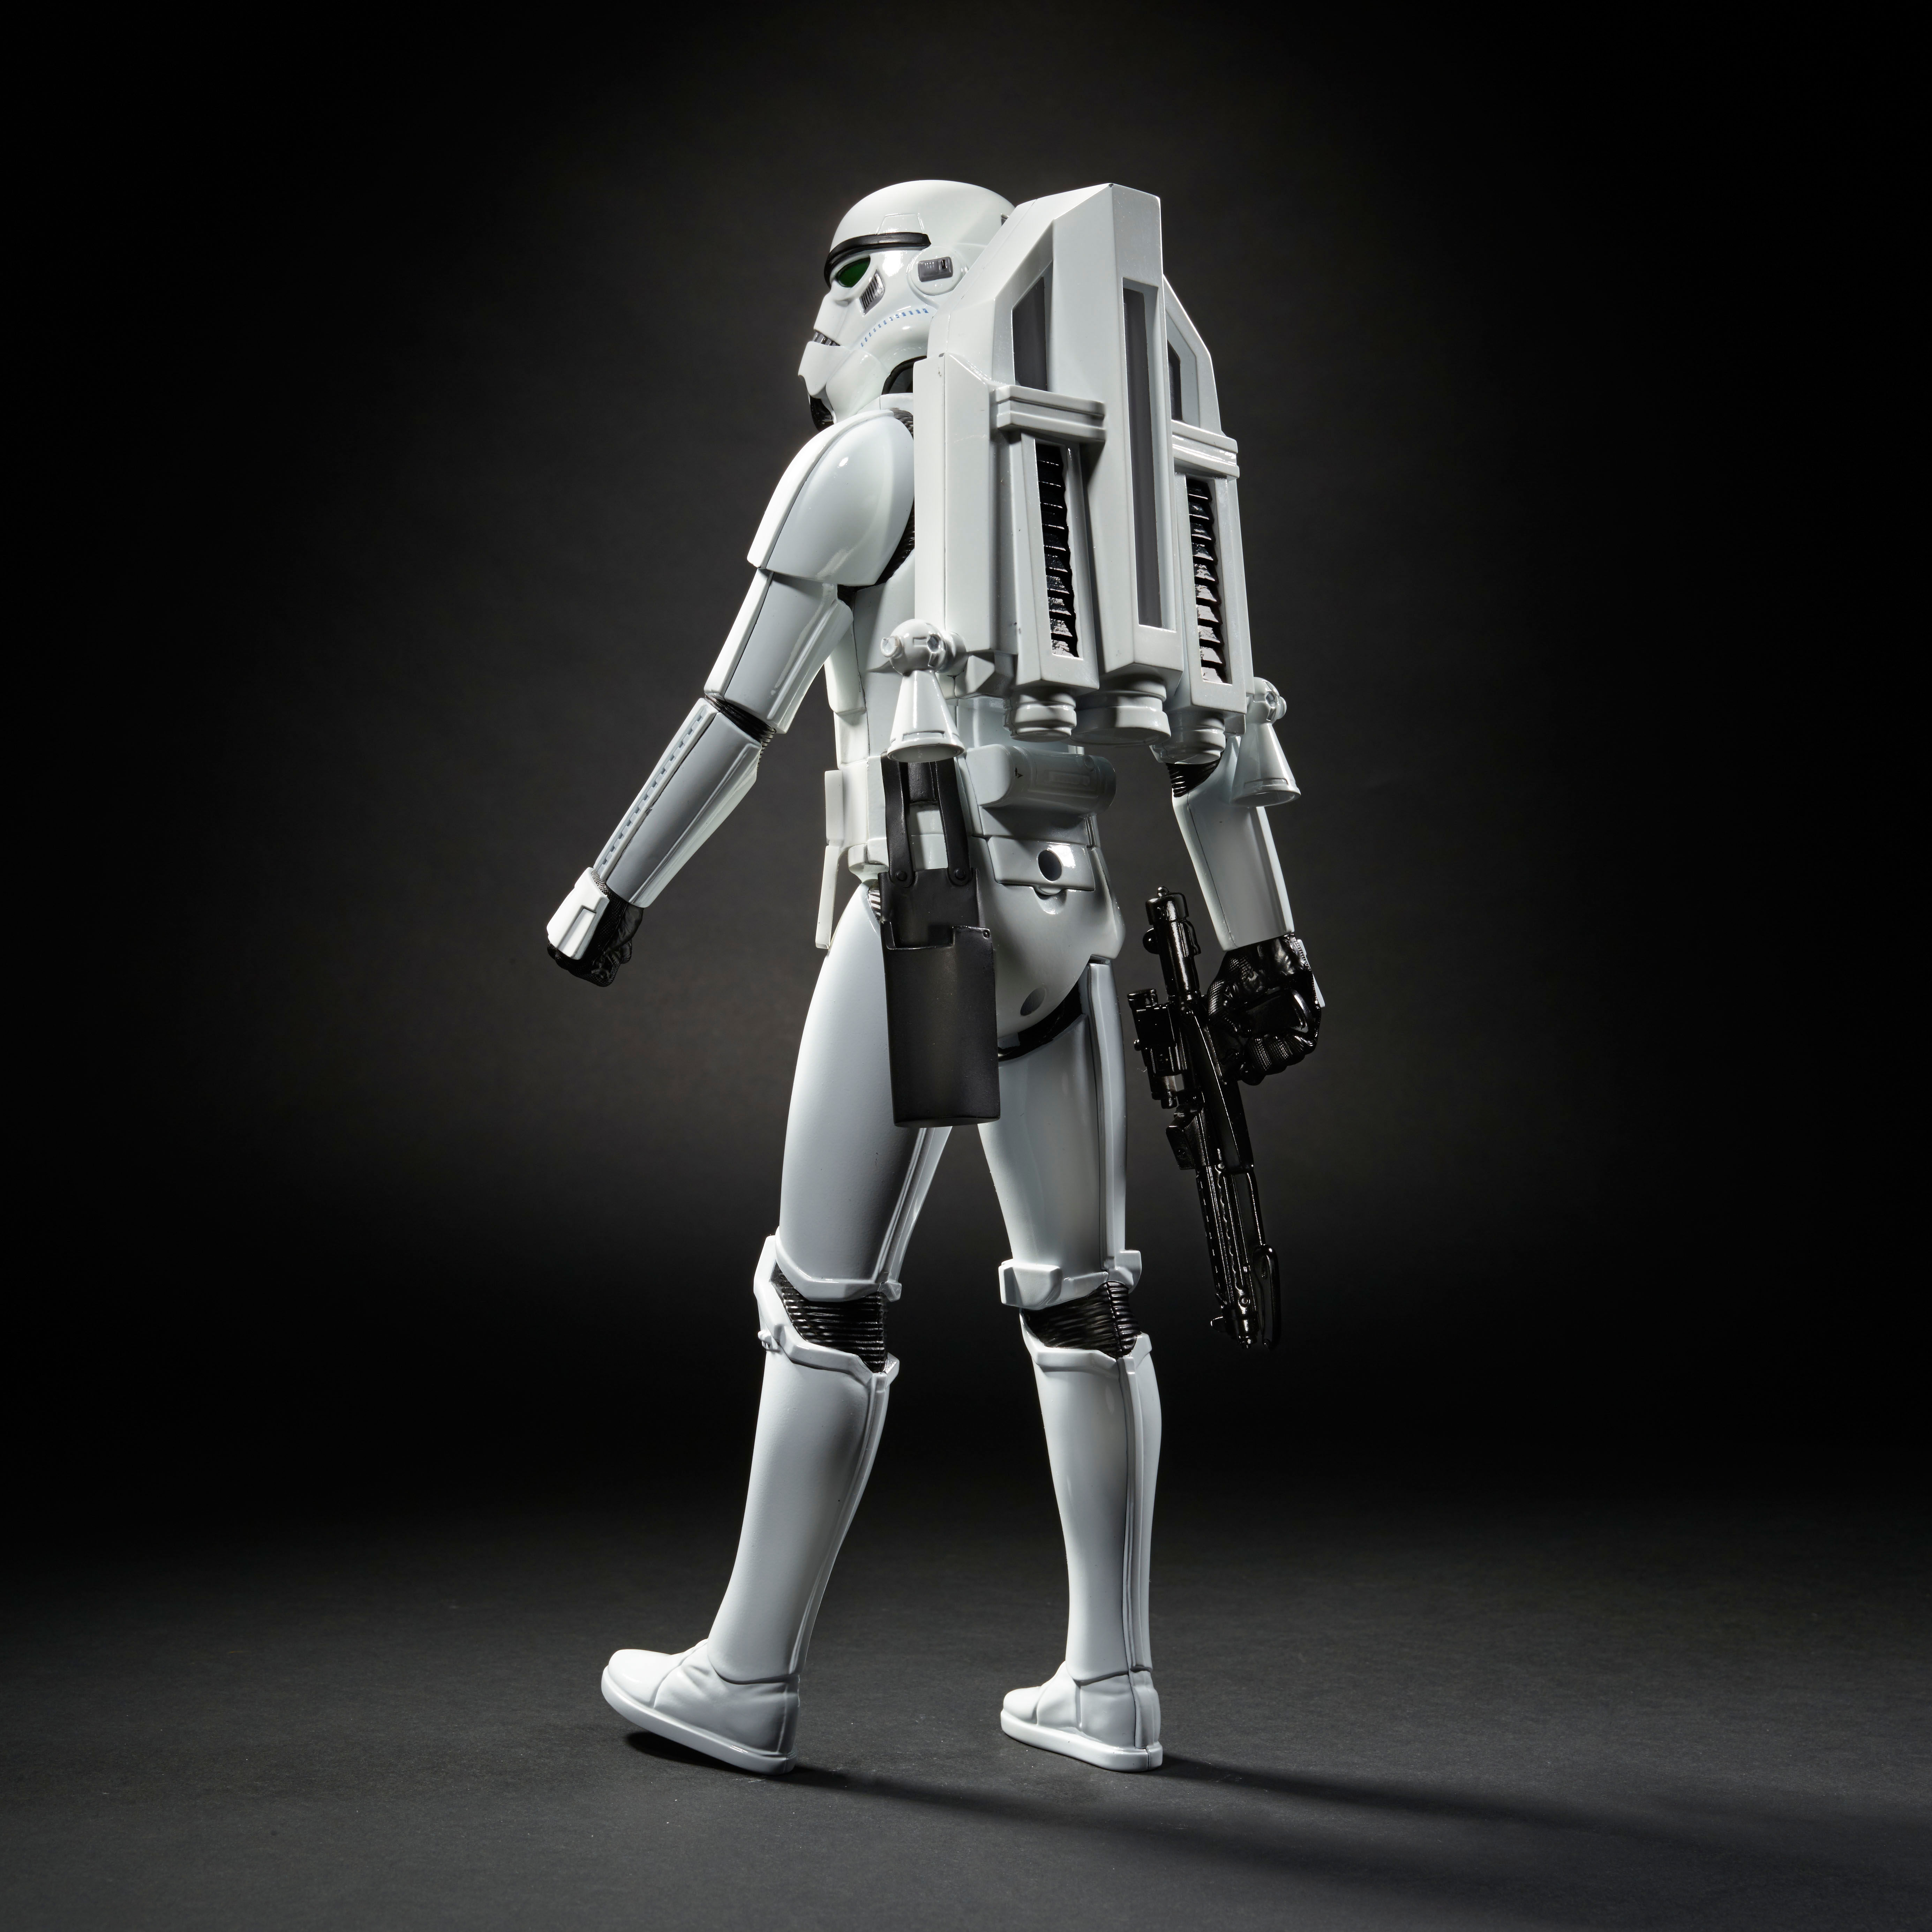 288 best images about Lego Storm Trooper on Pinterest | Lego, Mike ...